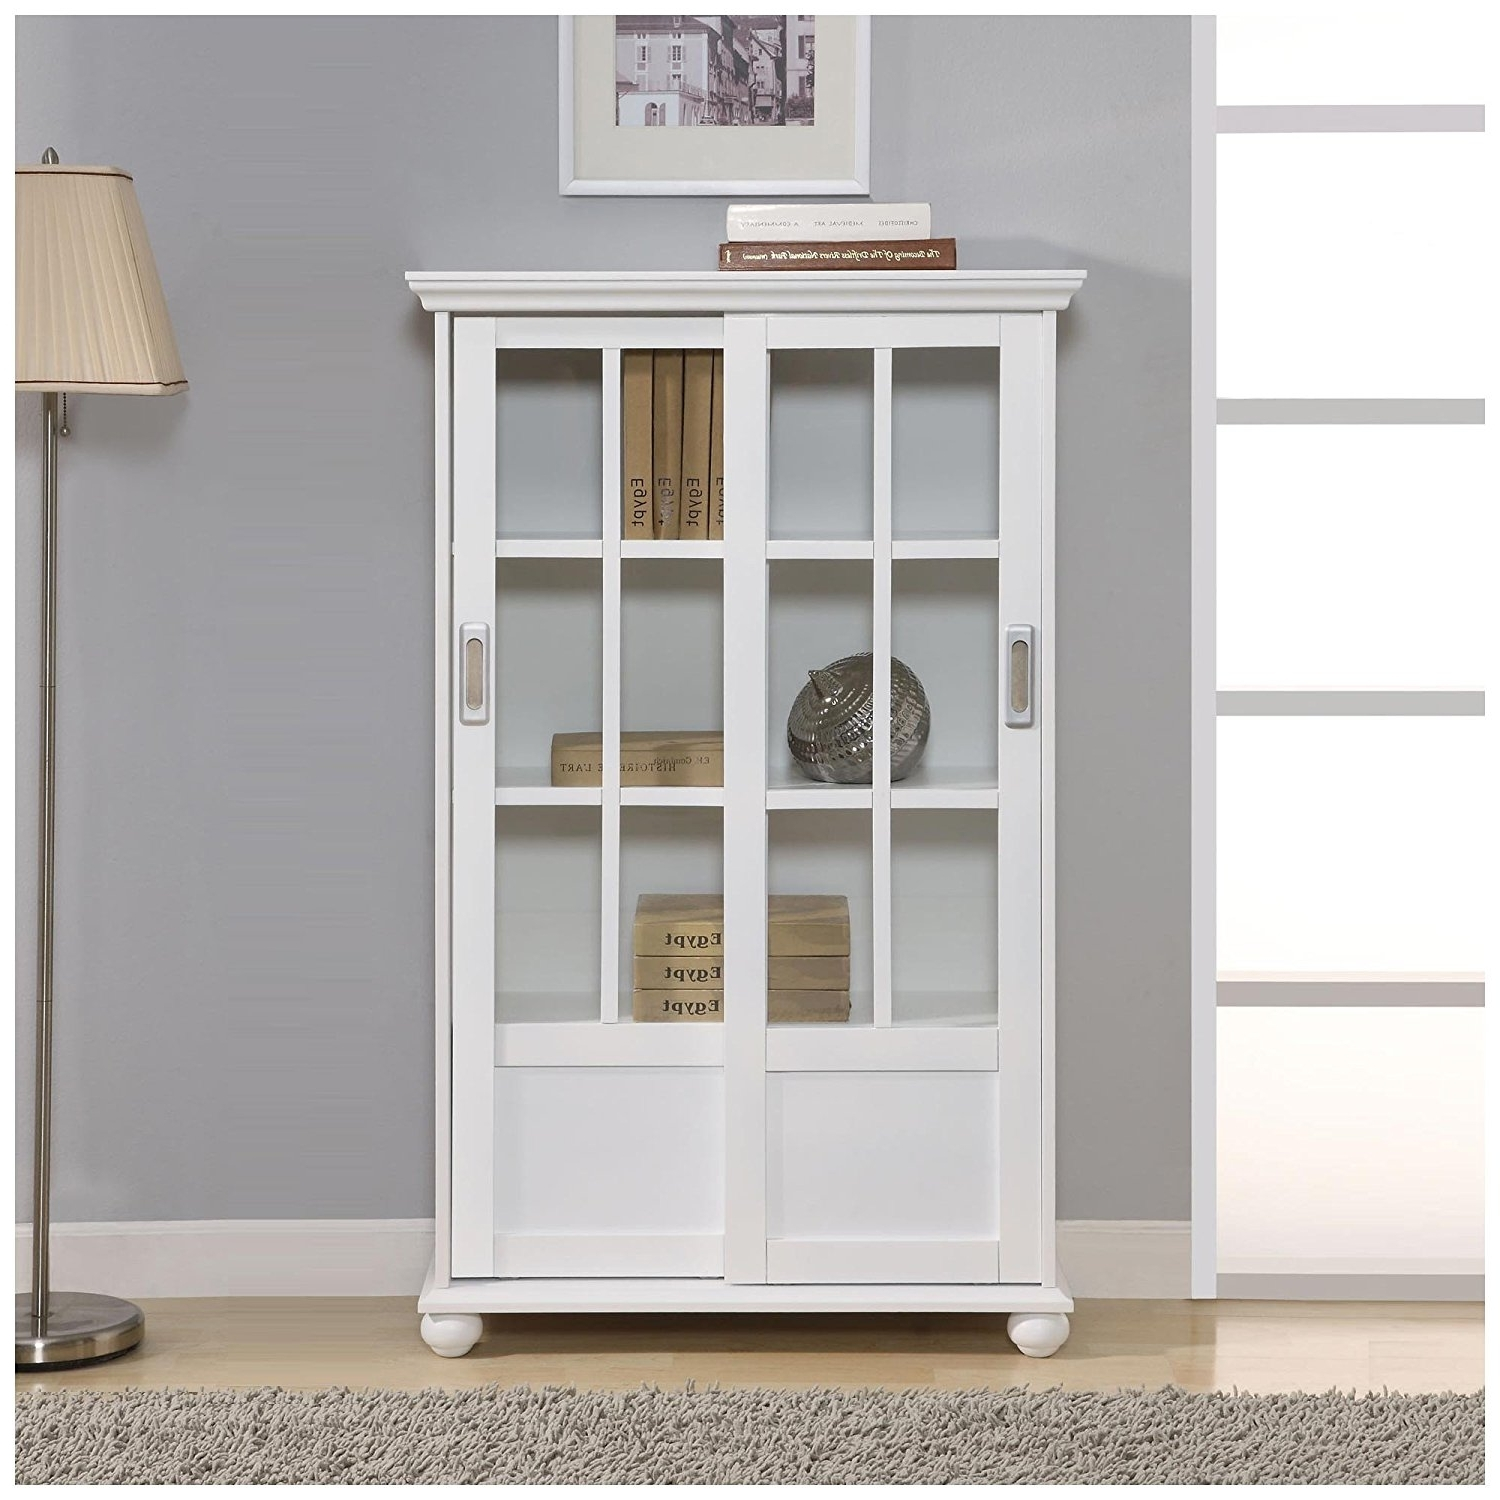 Trendy Glass Bookcases Inside Amazon: Altra 9448096 Bookcase With Sliding Glass Doors, White (View 13 of 15)